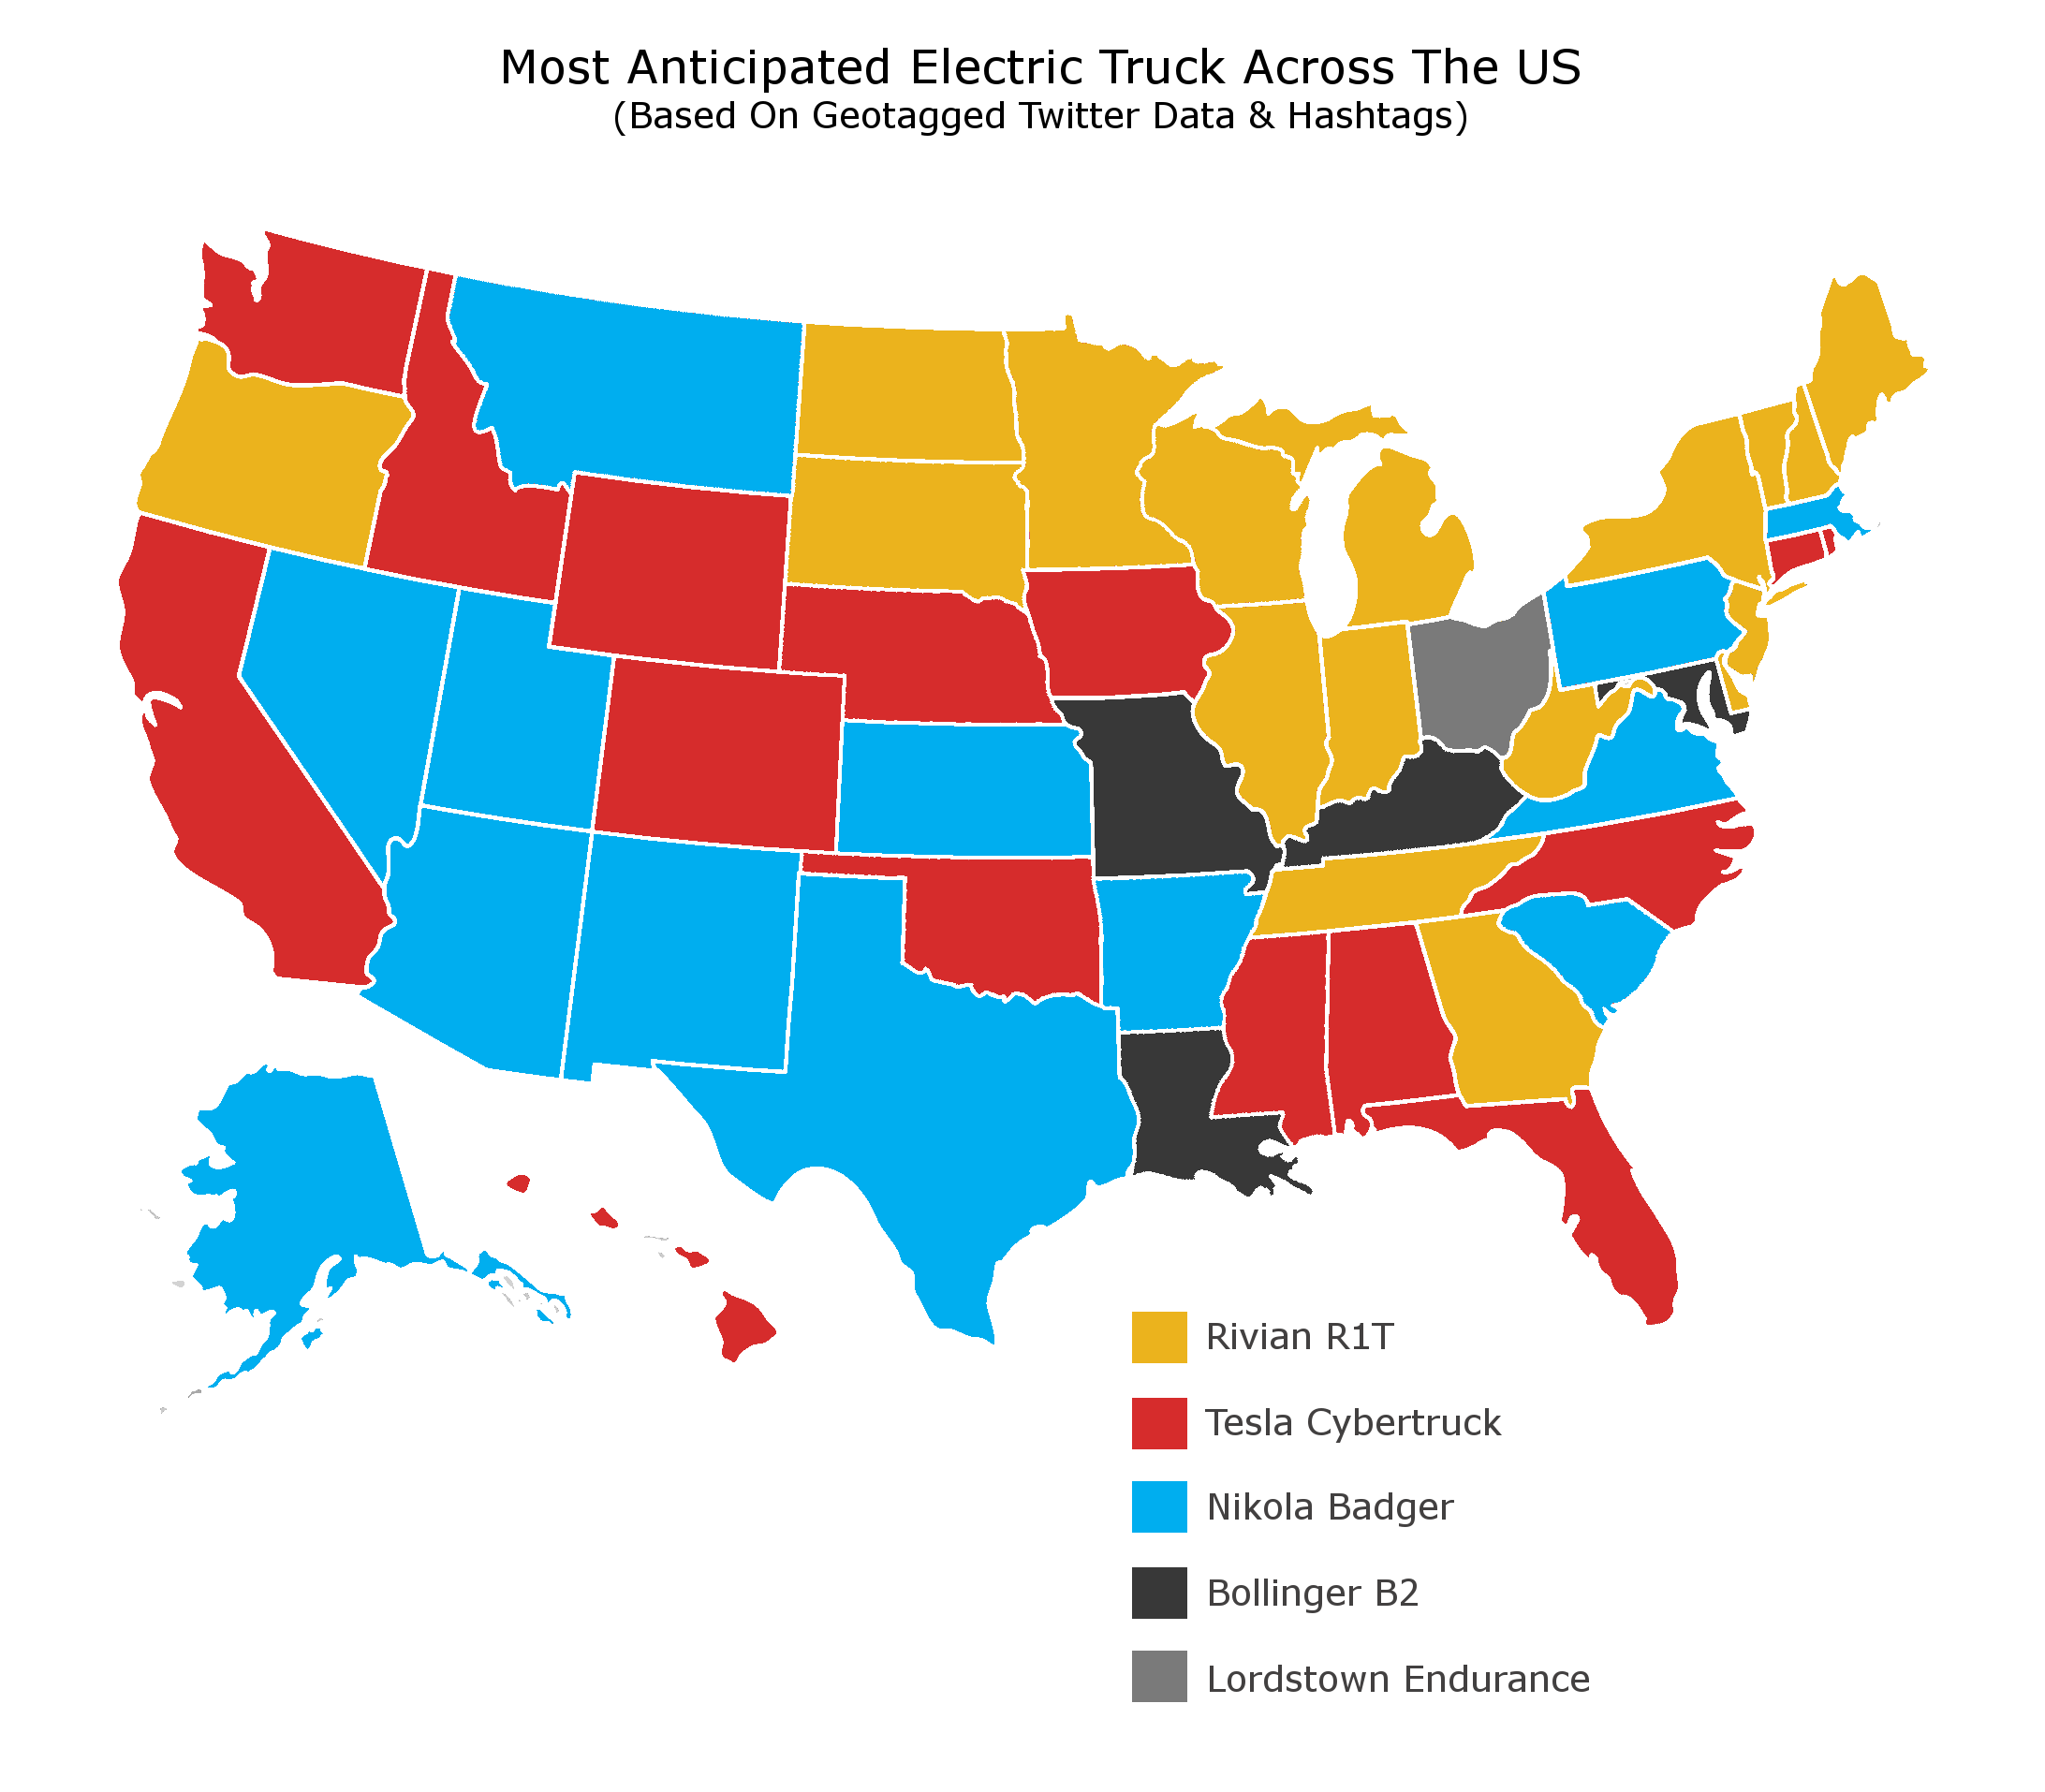 Electric Pickup Truck popularity map by PartCatalog.com